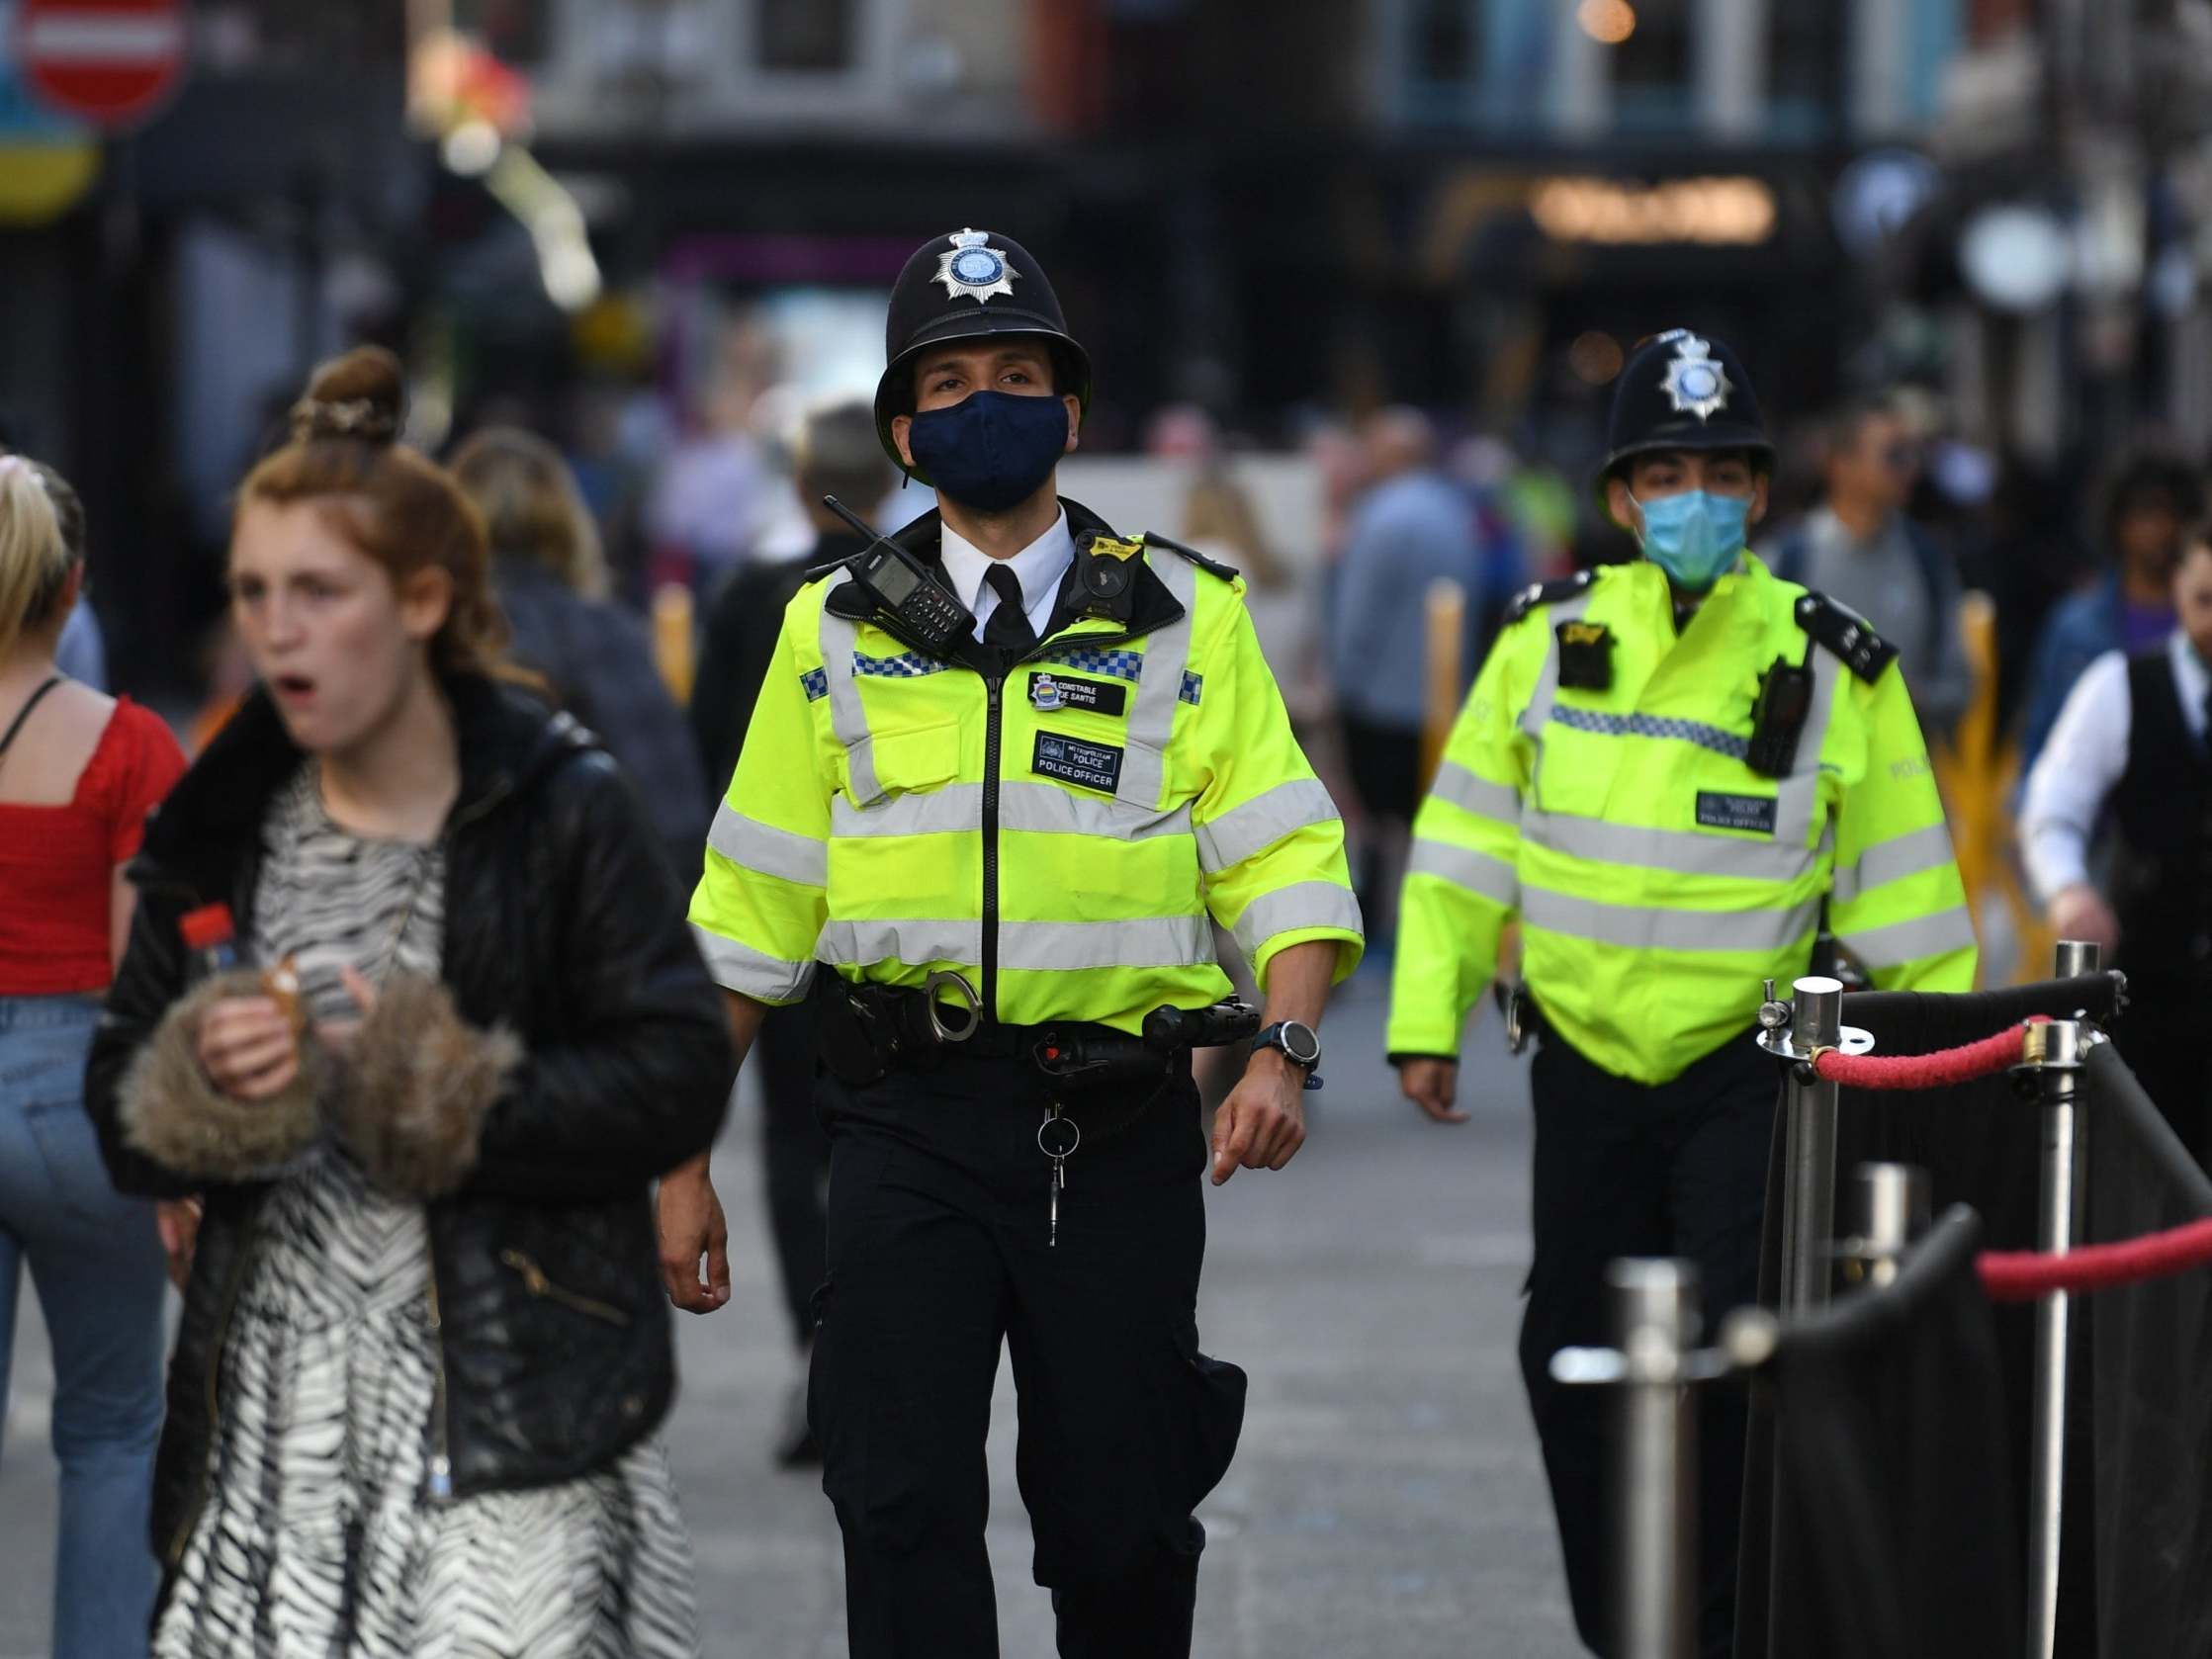 Police enforcement of coronavirus laws at lowest level since lockdown started thumbnail